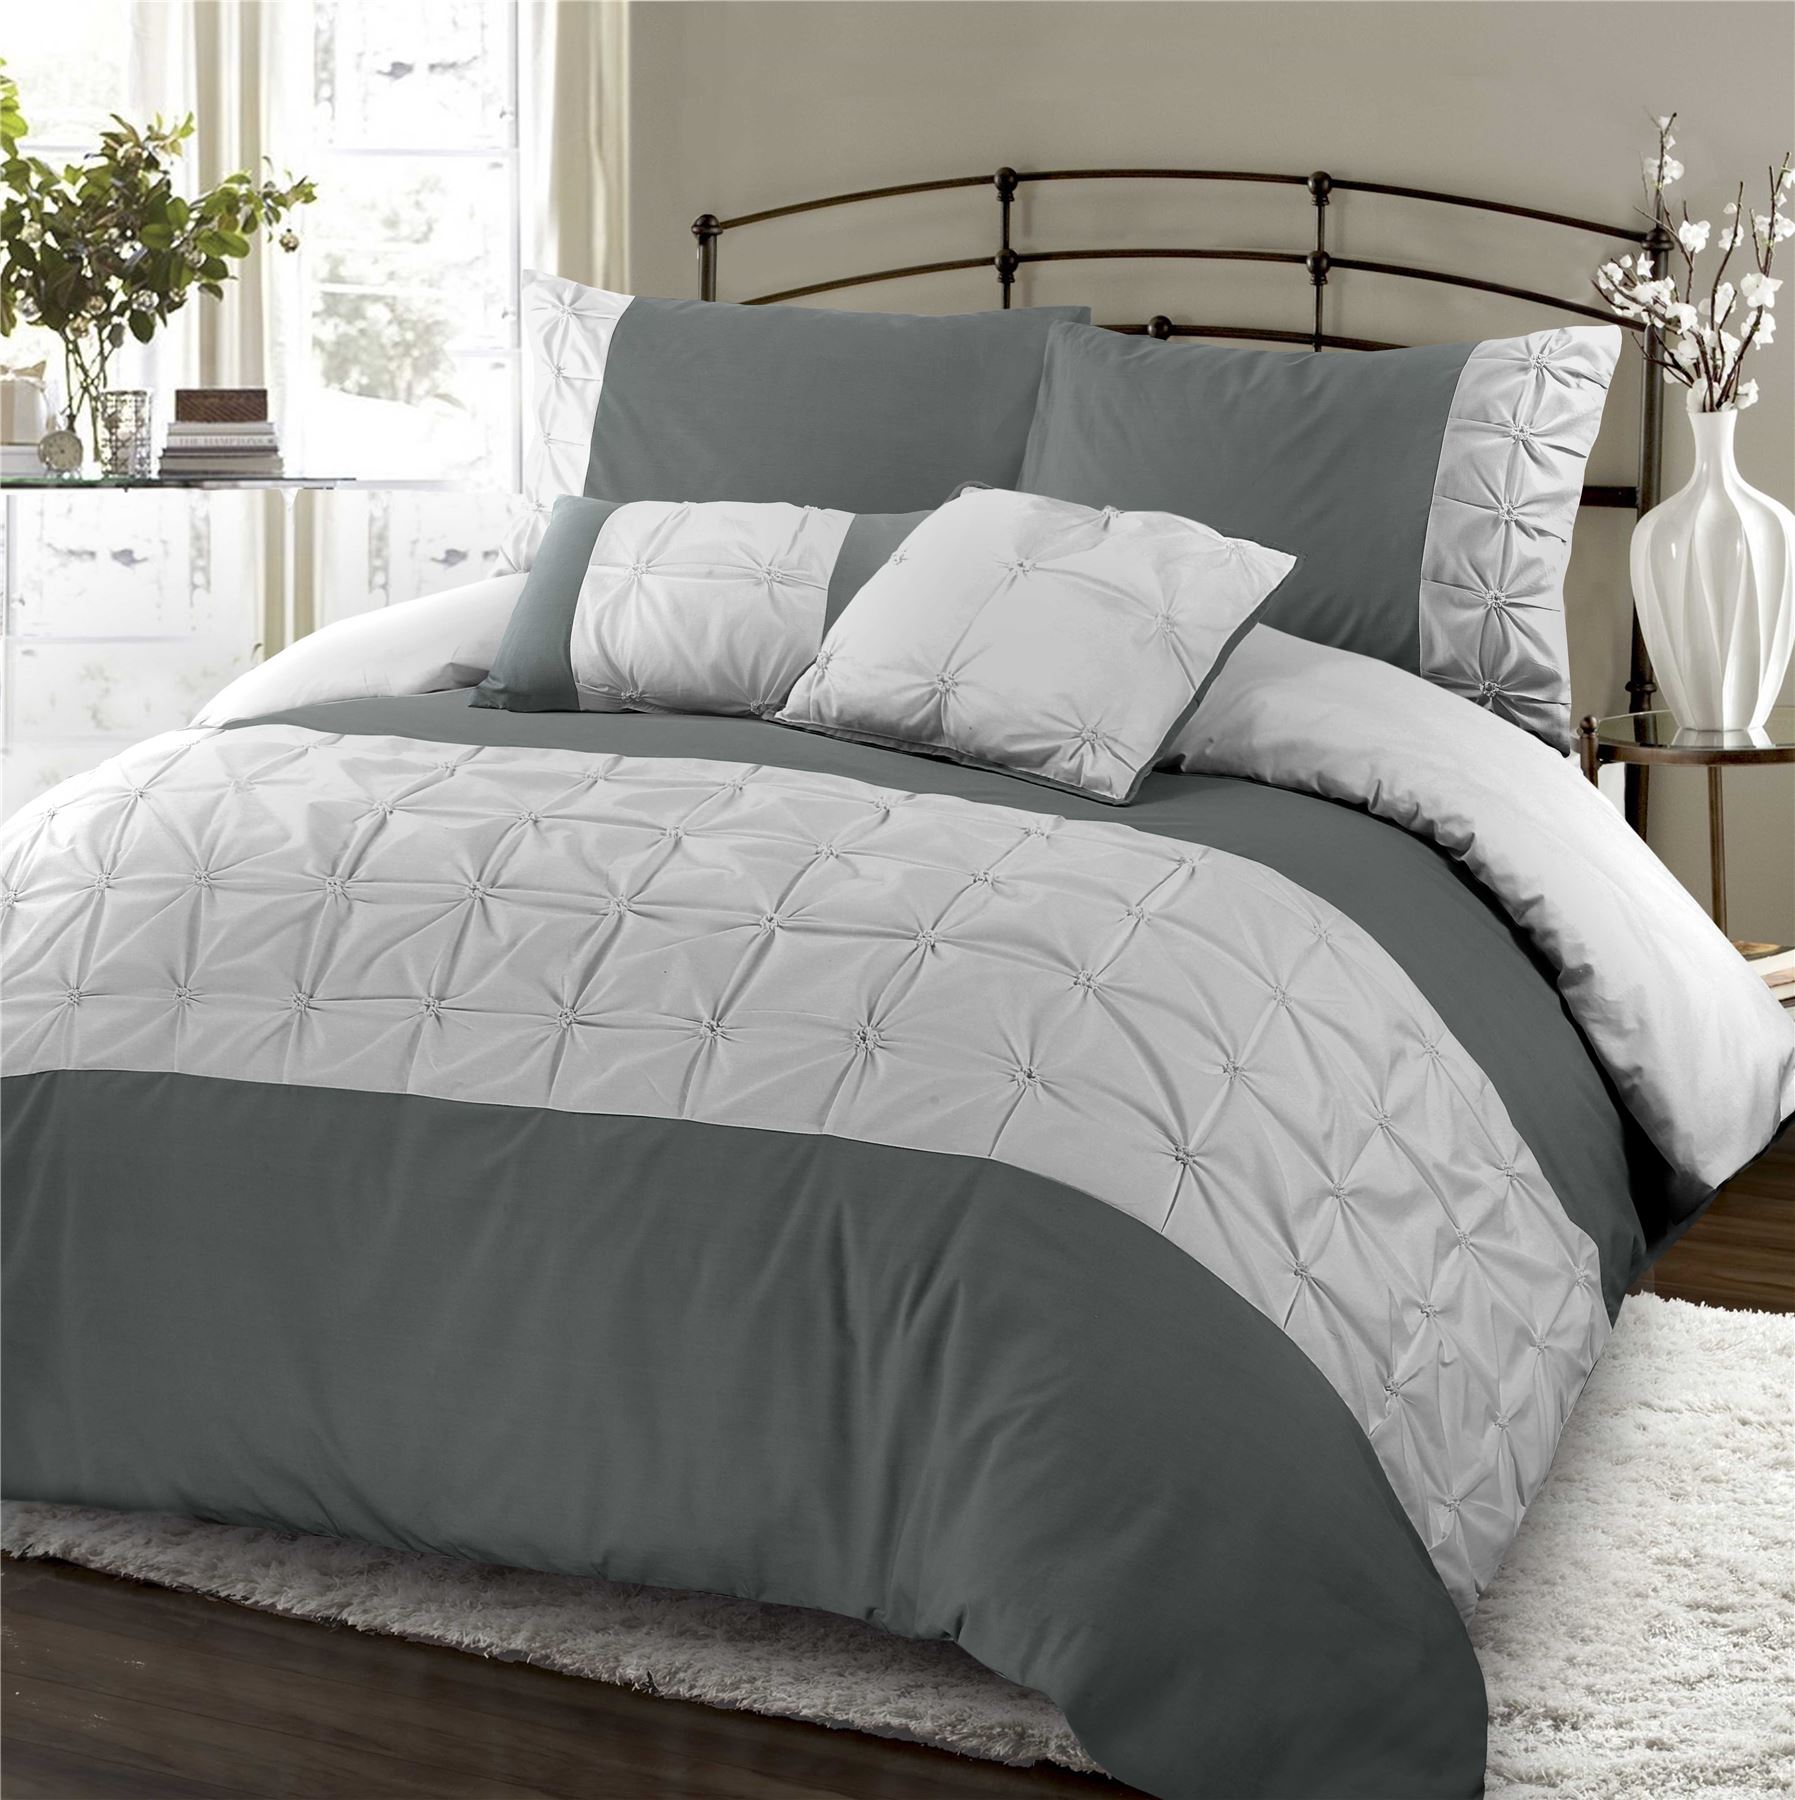 Jones Soft Pintuck Ruched Embroidered Cotton Rich Quilt Duvet Cover Bedding Set